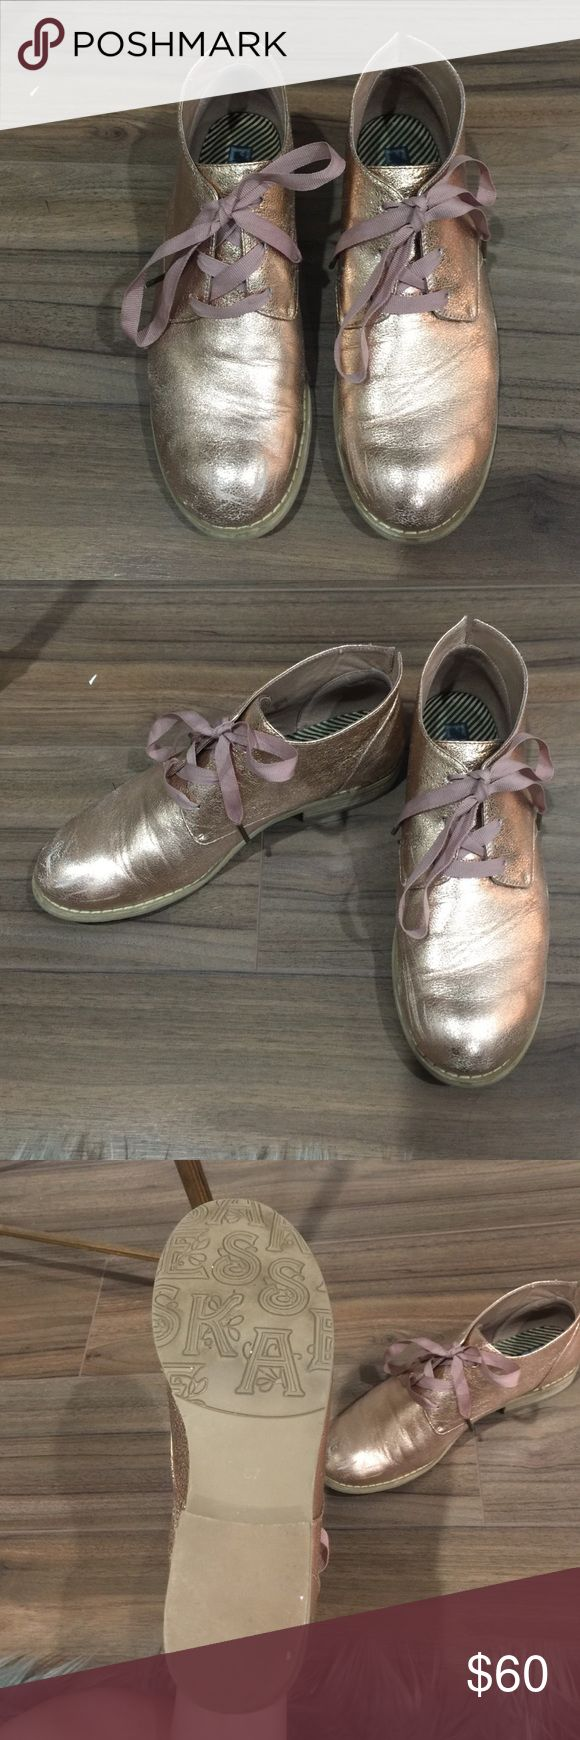 Rose Gold ankle boots Worn once, rose gold ankle boots that add a metallic glint to any outfit! esska Shoes Ankle Boots & Booties